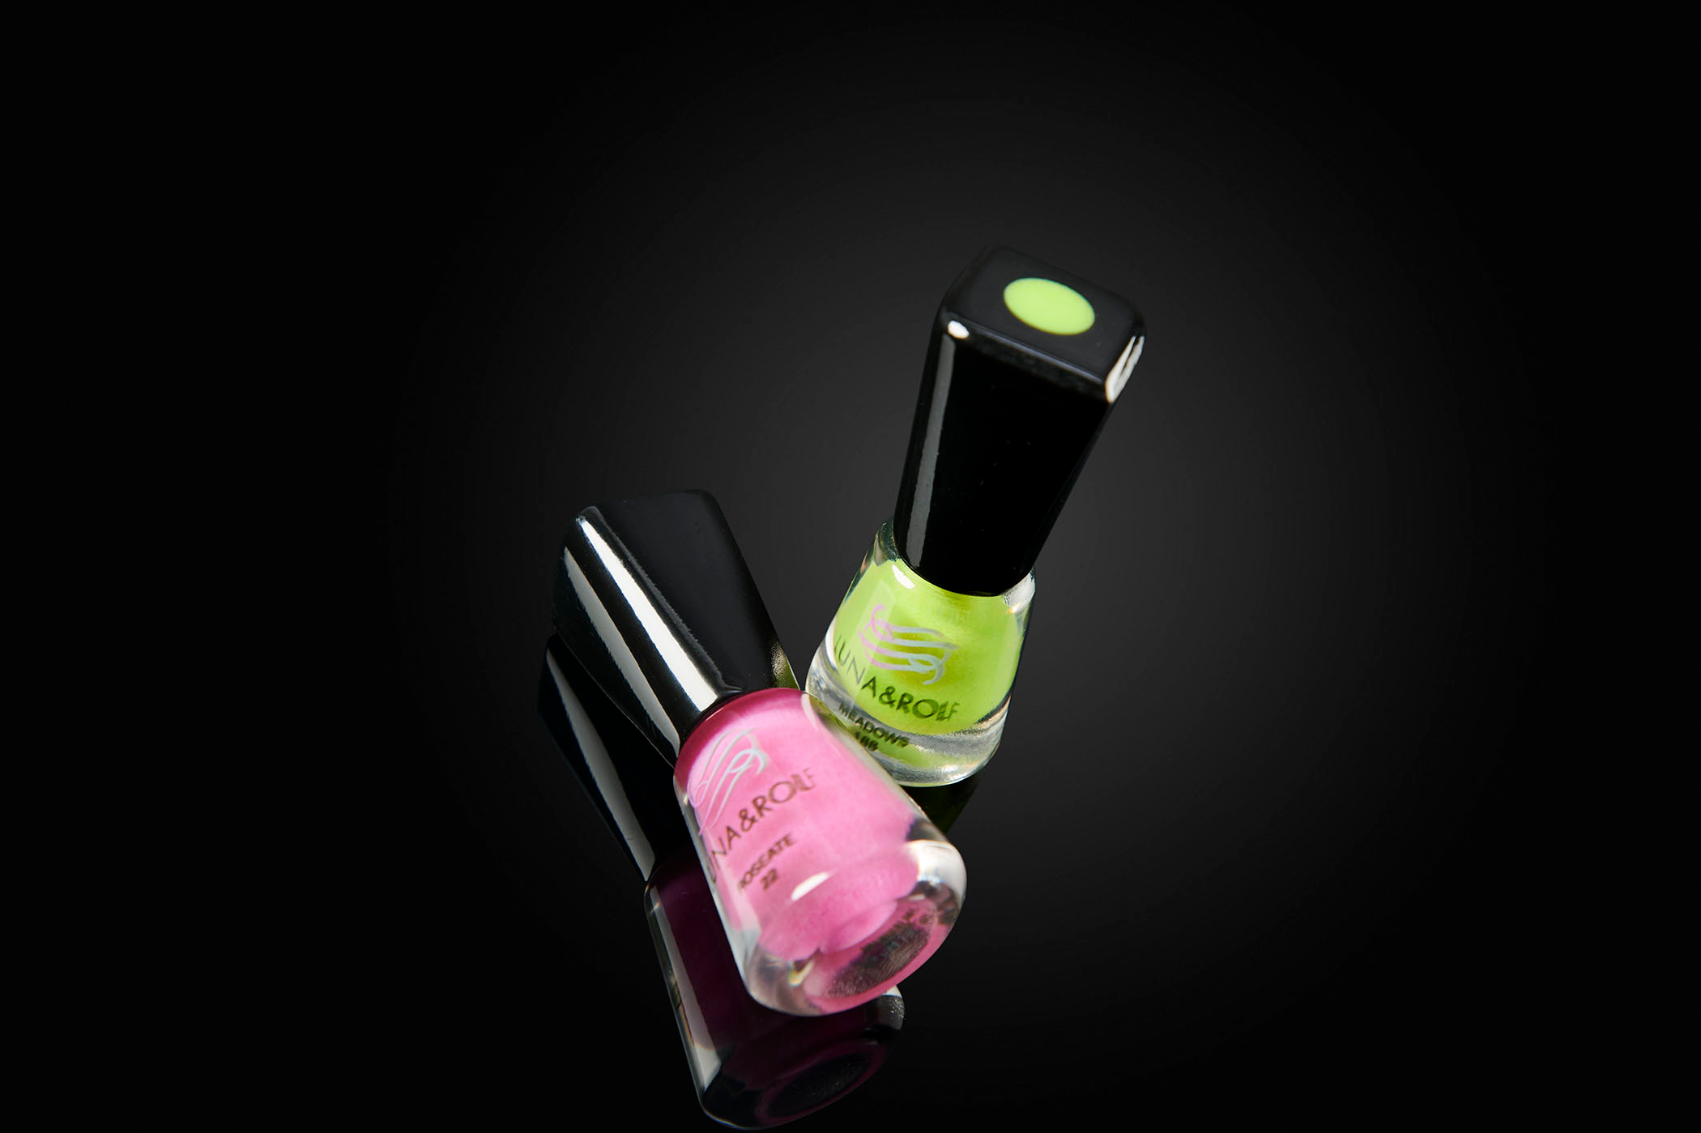 Nail polish prototypes using 3D printing technologies.